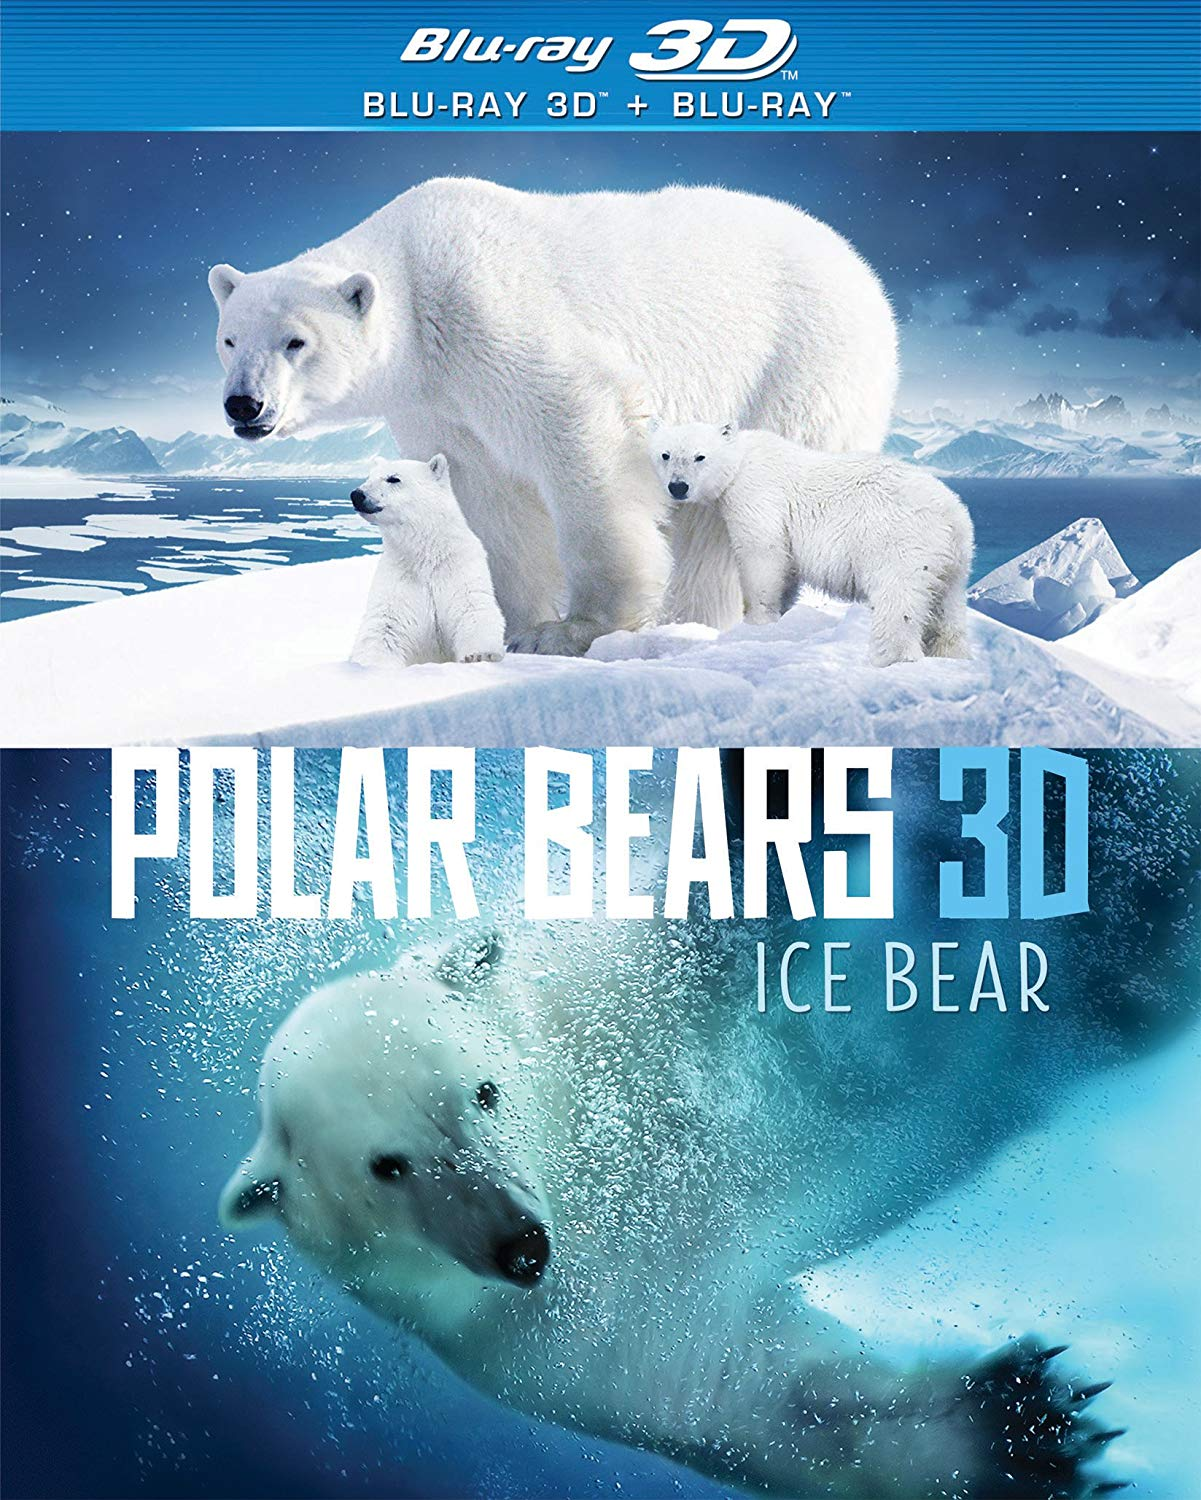 Ice Bear 3D film poster